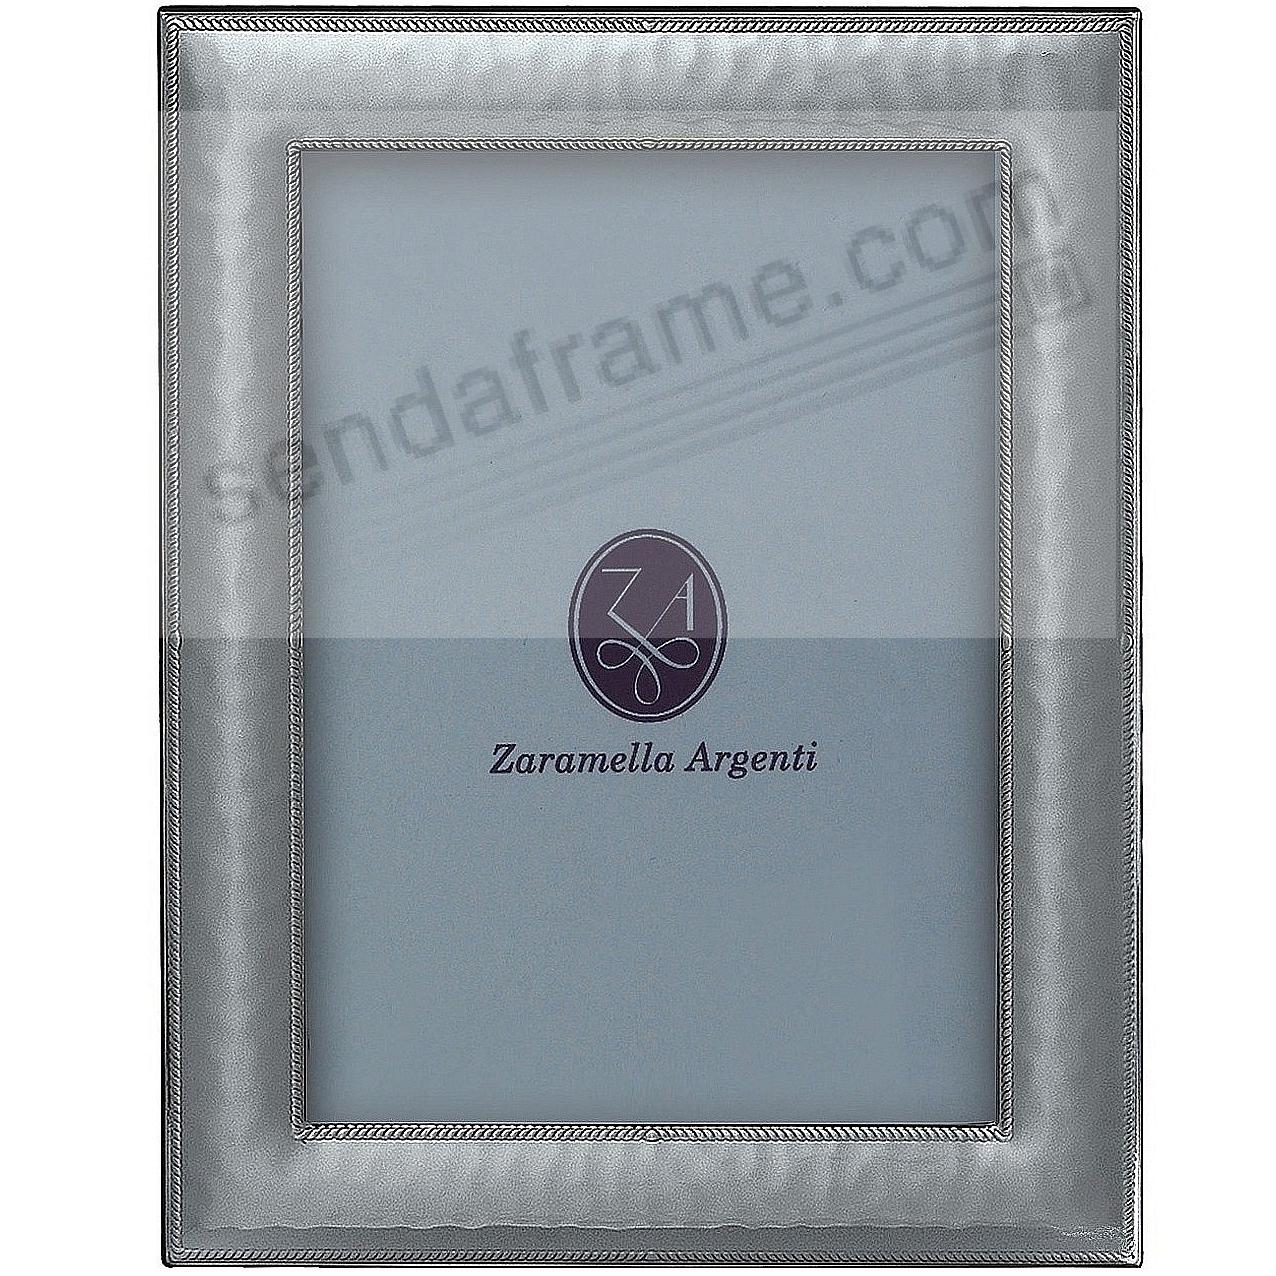 Paris hammered sterling silver with braid border wallet size frame paris hammered sterling silver with braid border wallet size frame by zaramella argenti jeuxipadfo Image collections